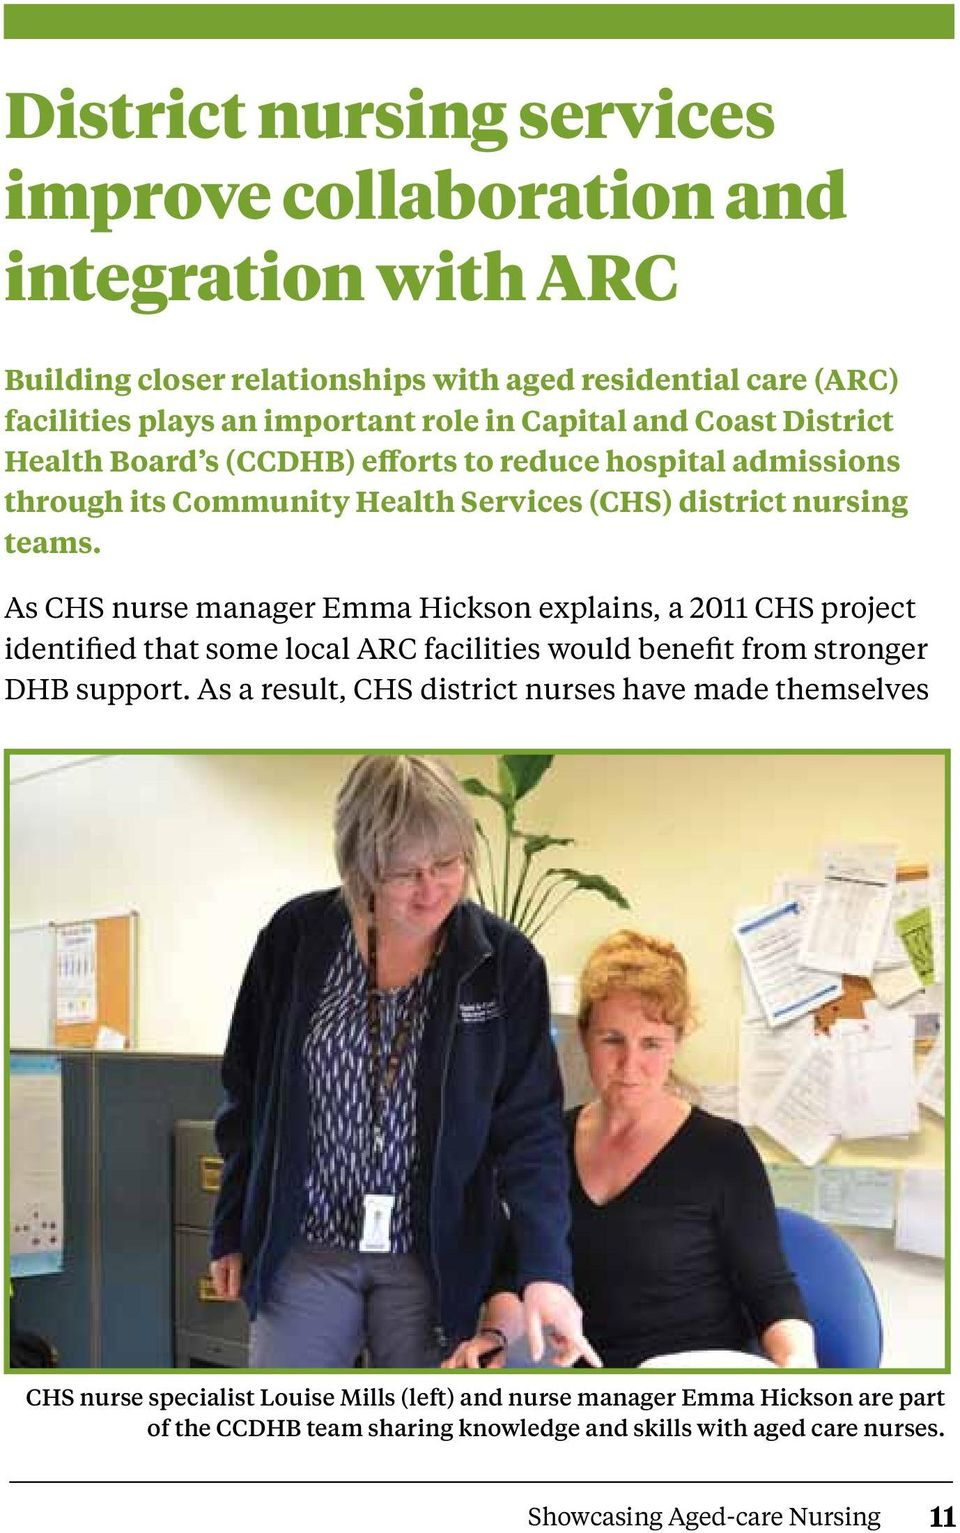 As CHS nurse manager Emma Hickson explains, a 2011 CHS project identified that some local ARC facilities would benefit from stronger DHB support.